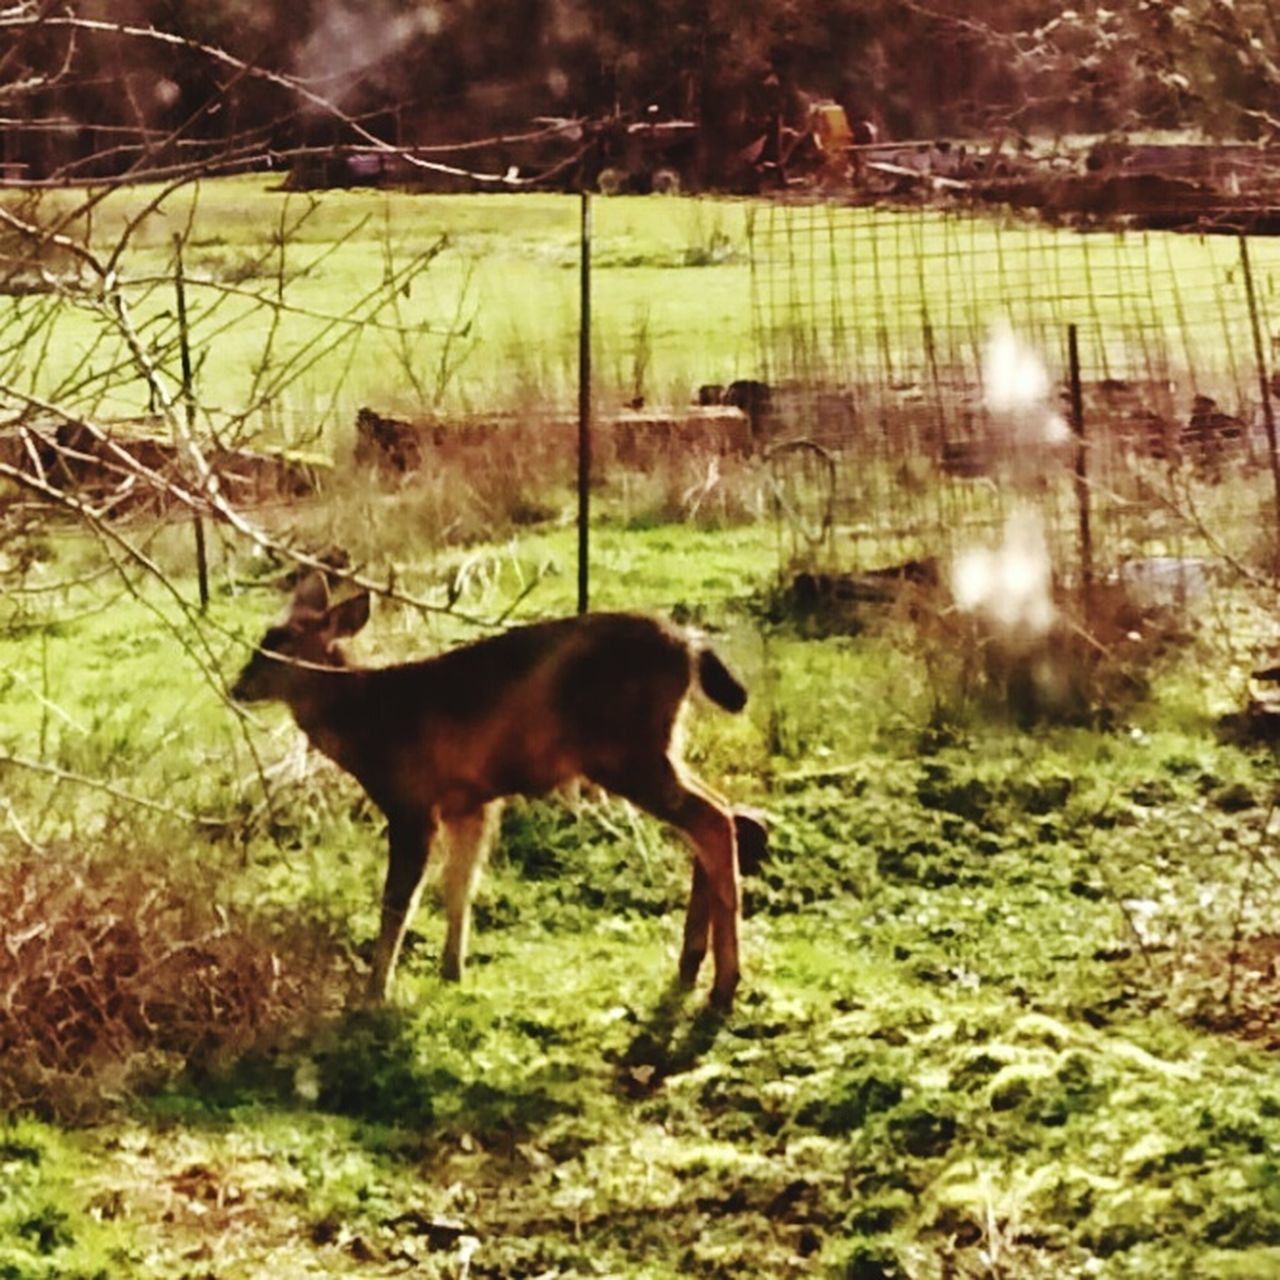 animal themes, one animal, no people, mammal, field, domestic animals, day, nature, grass, full length, outdoors